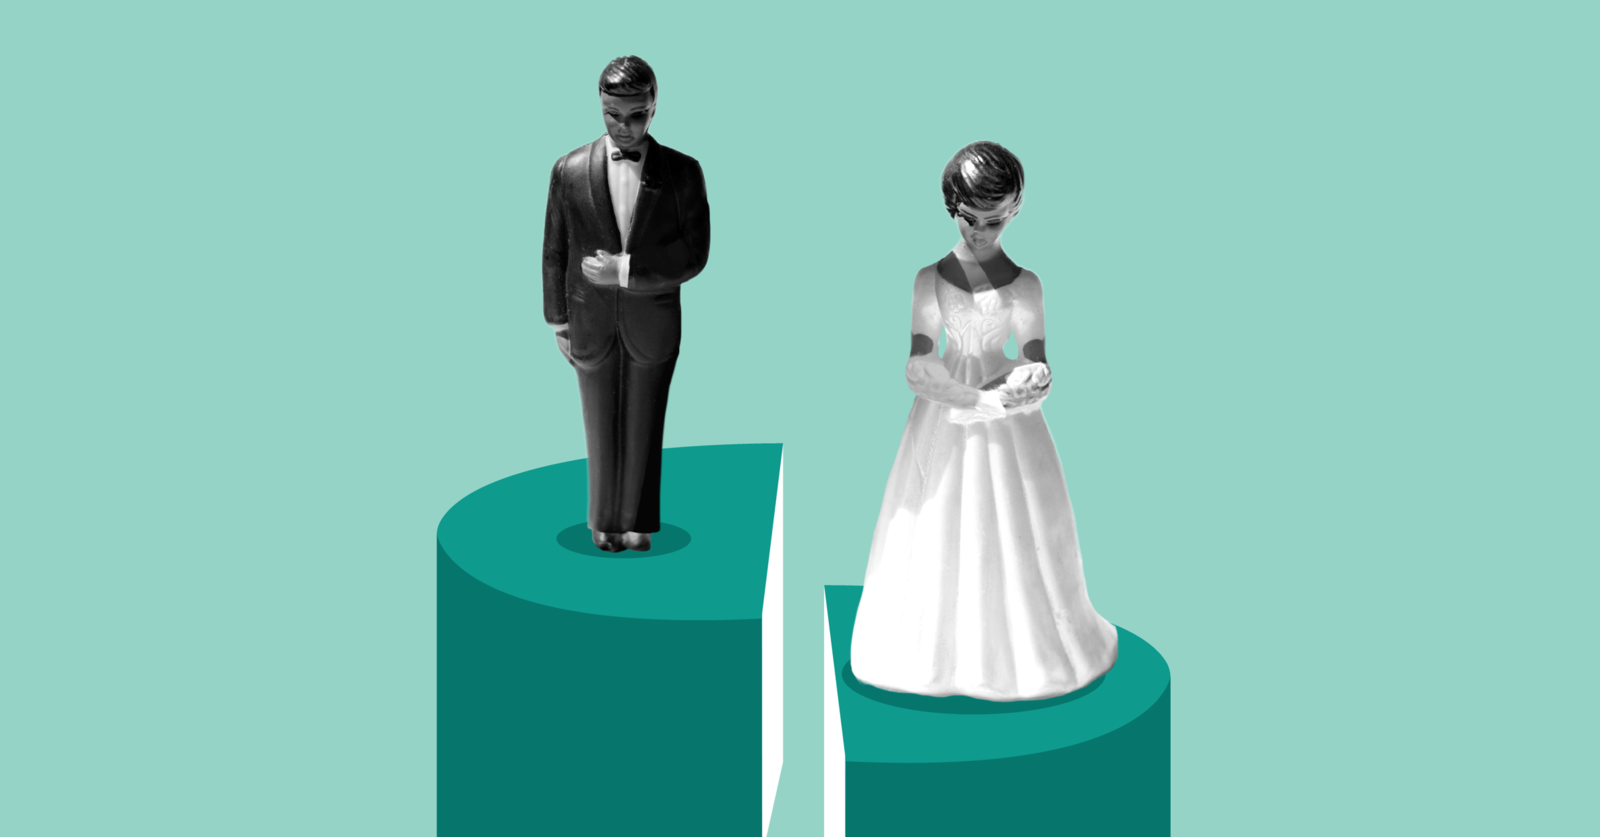 Husband And Wife Figure On Wedding Cake, Husband on Higher Level Than Wife